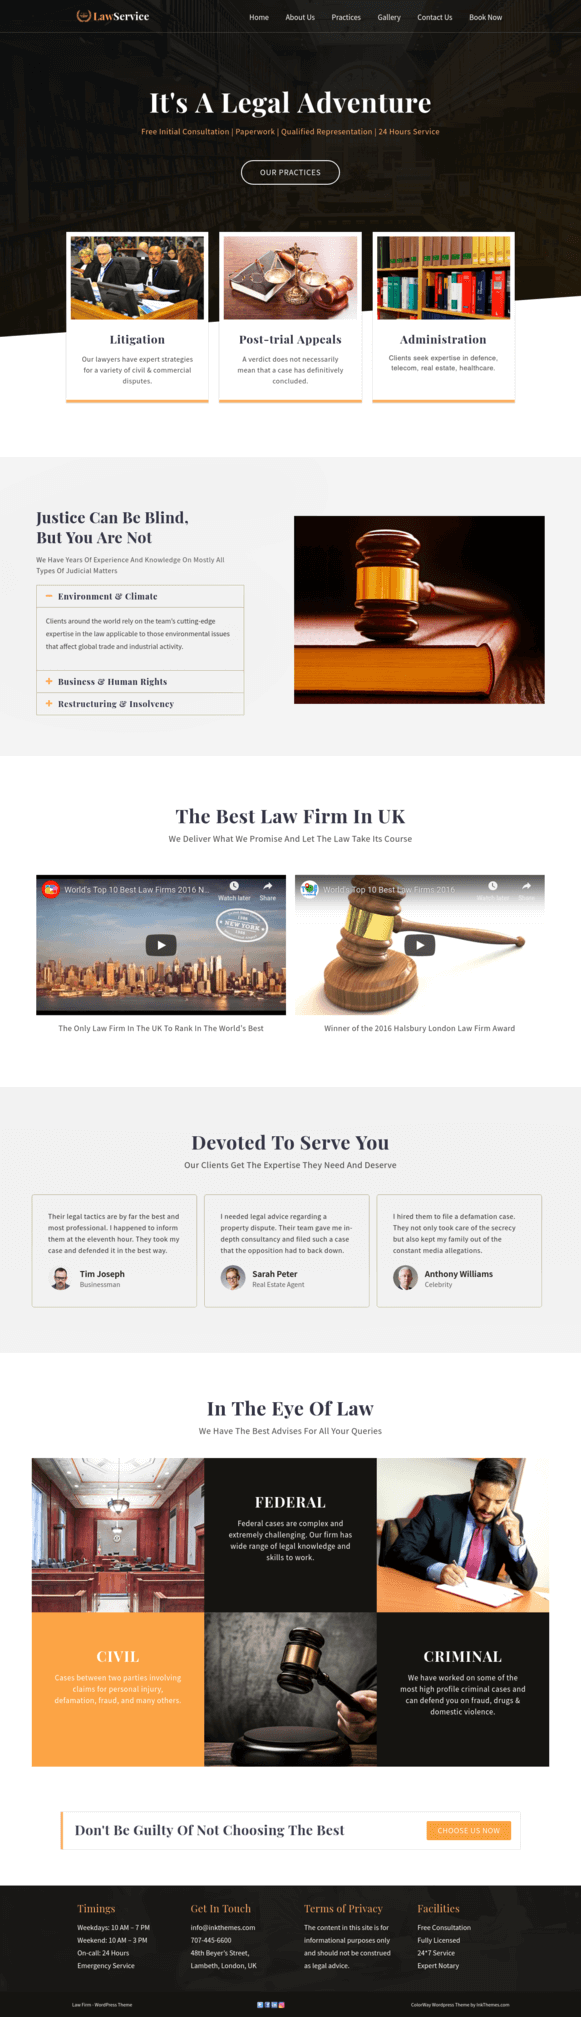 Law Firm Home Page